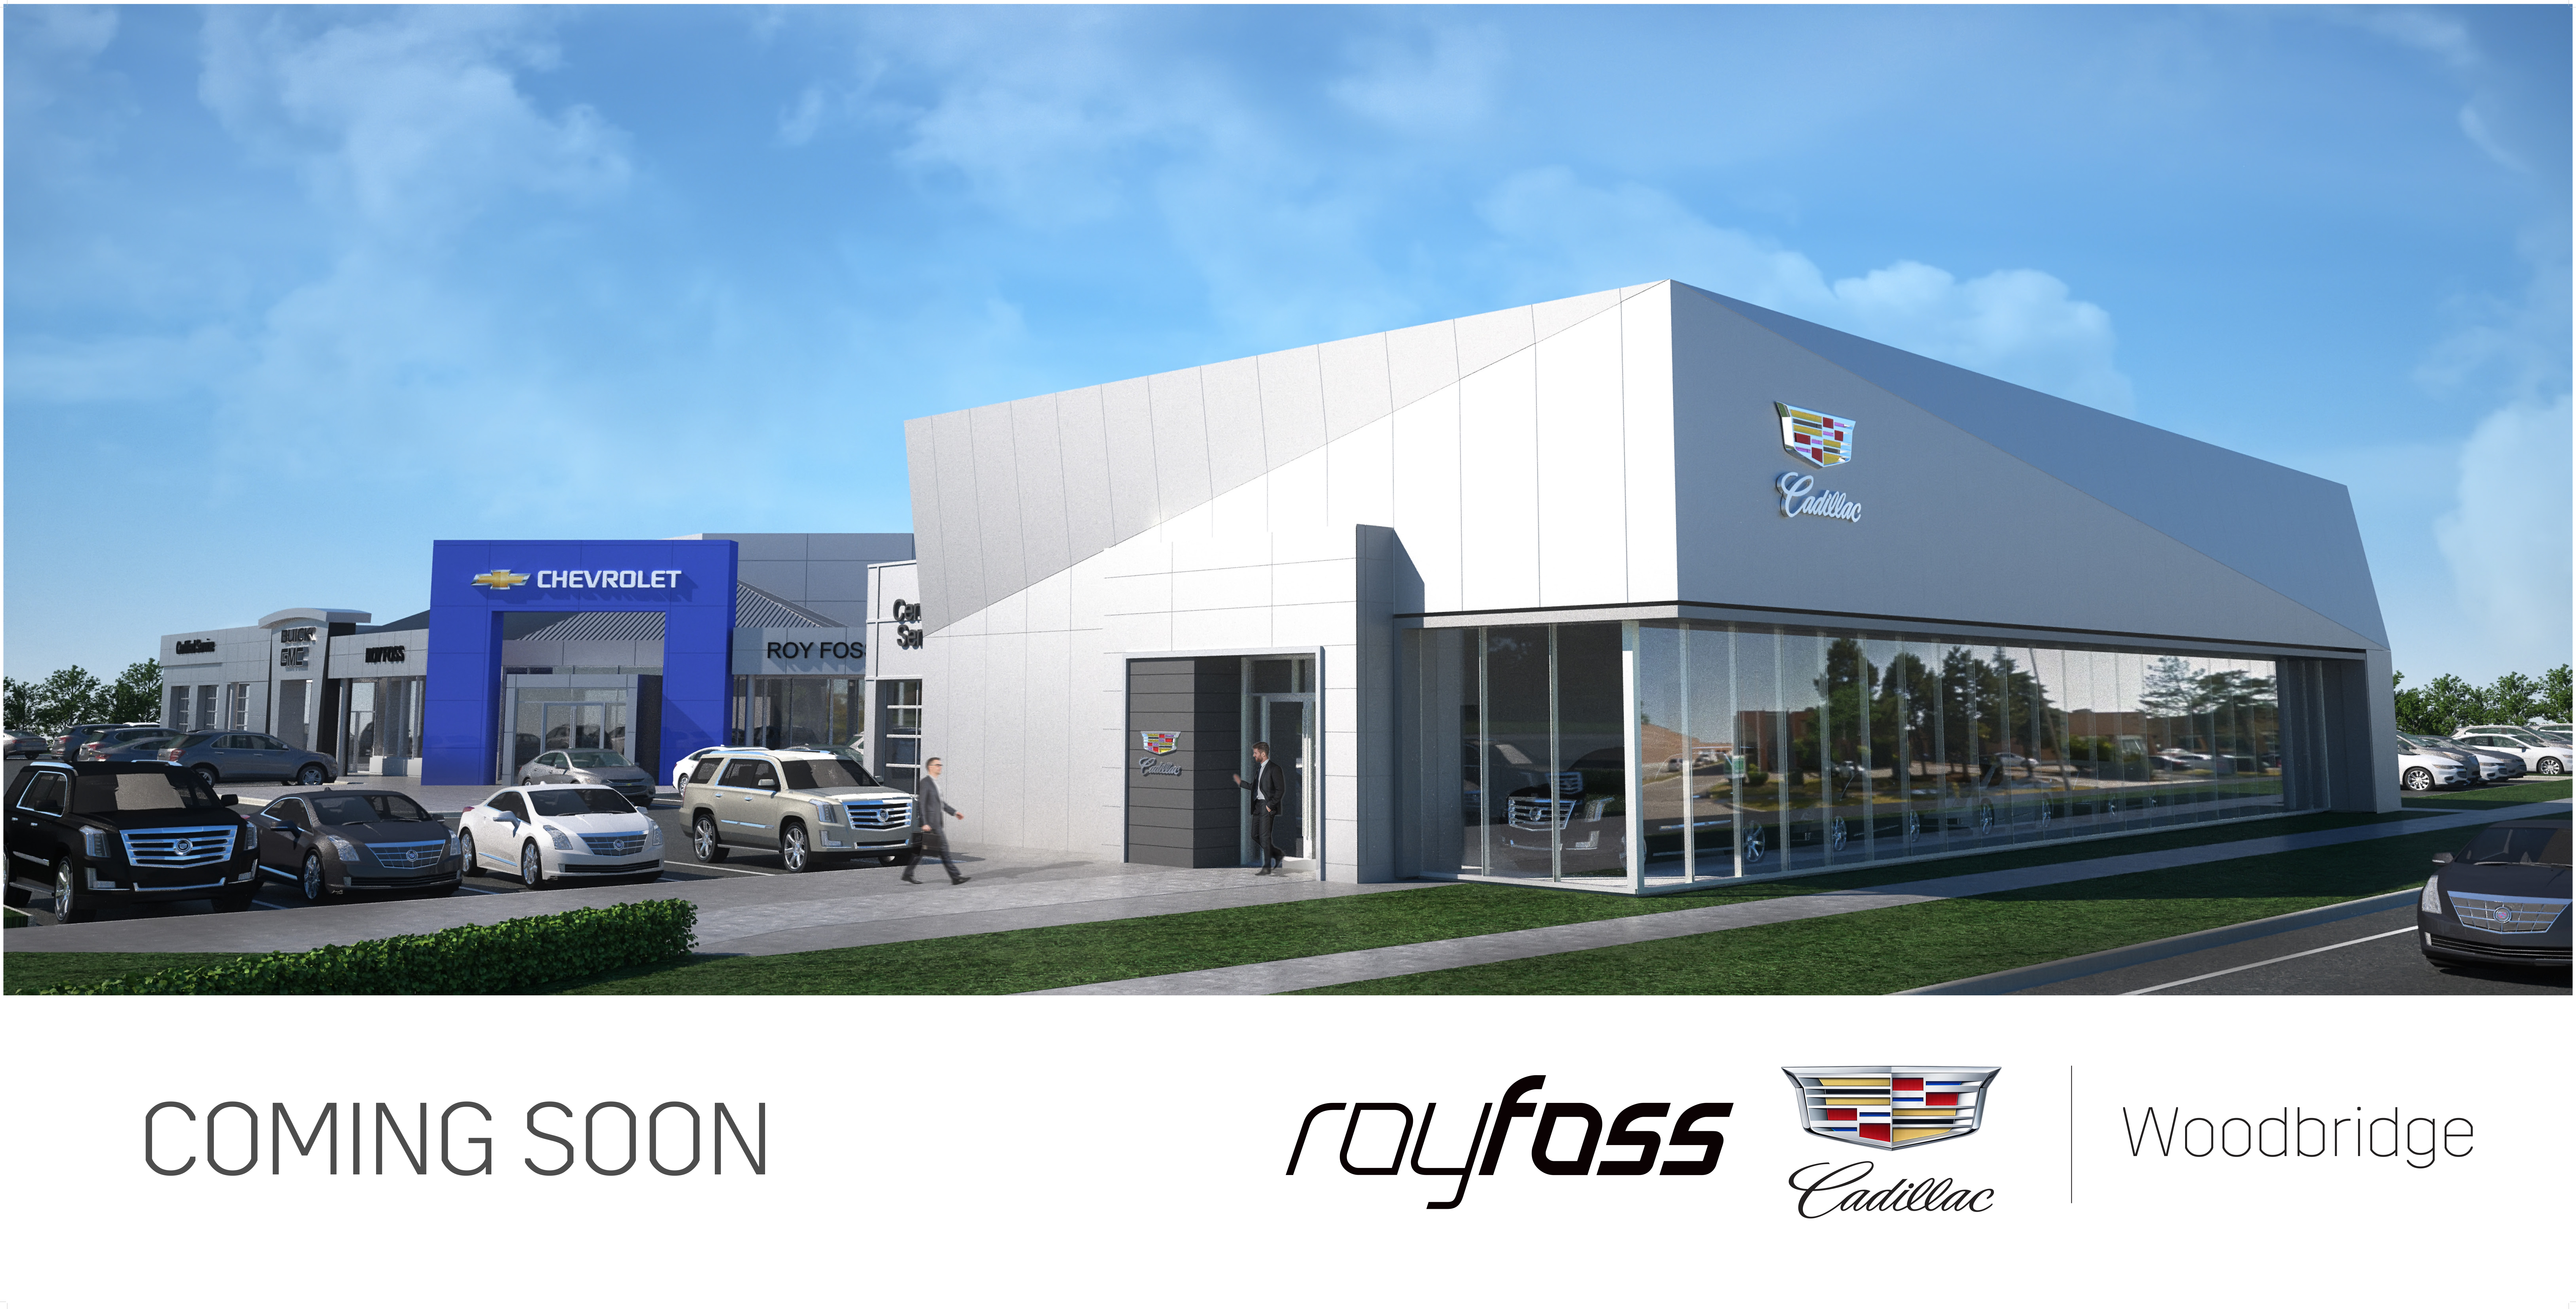 completes morrissey cadillac buick gmc renovation construction dealership quality post inside